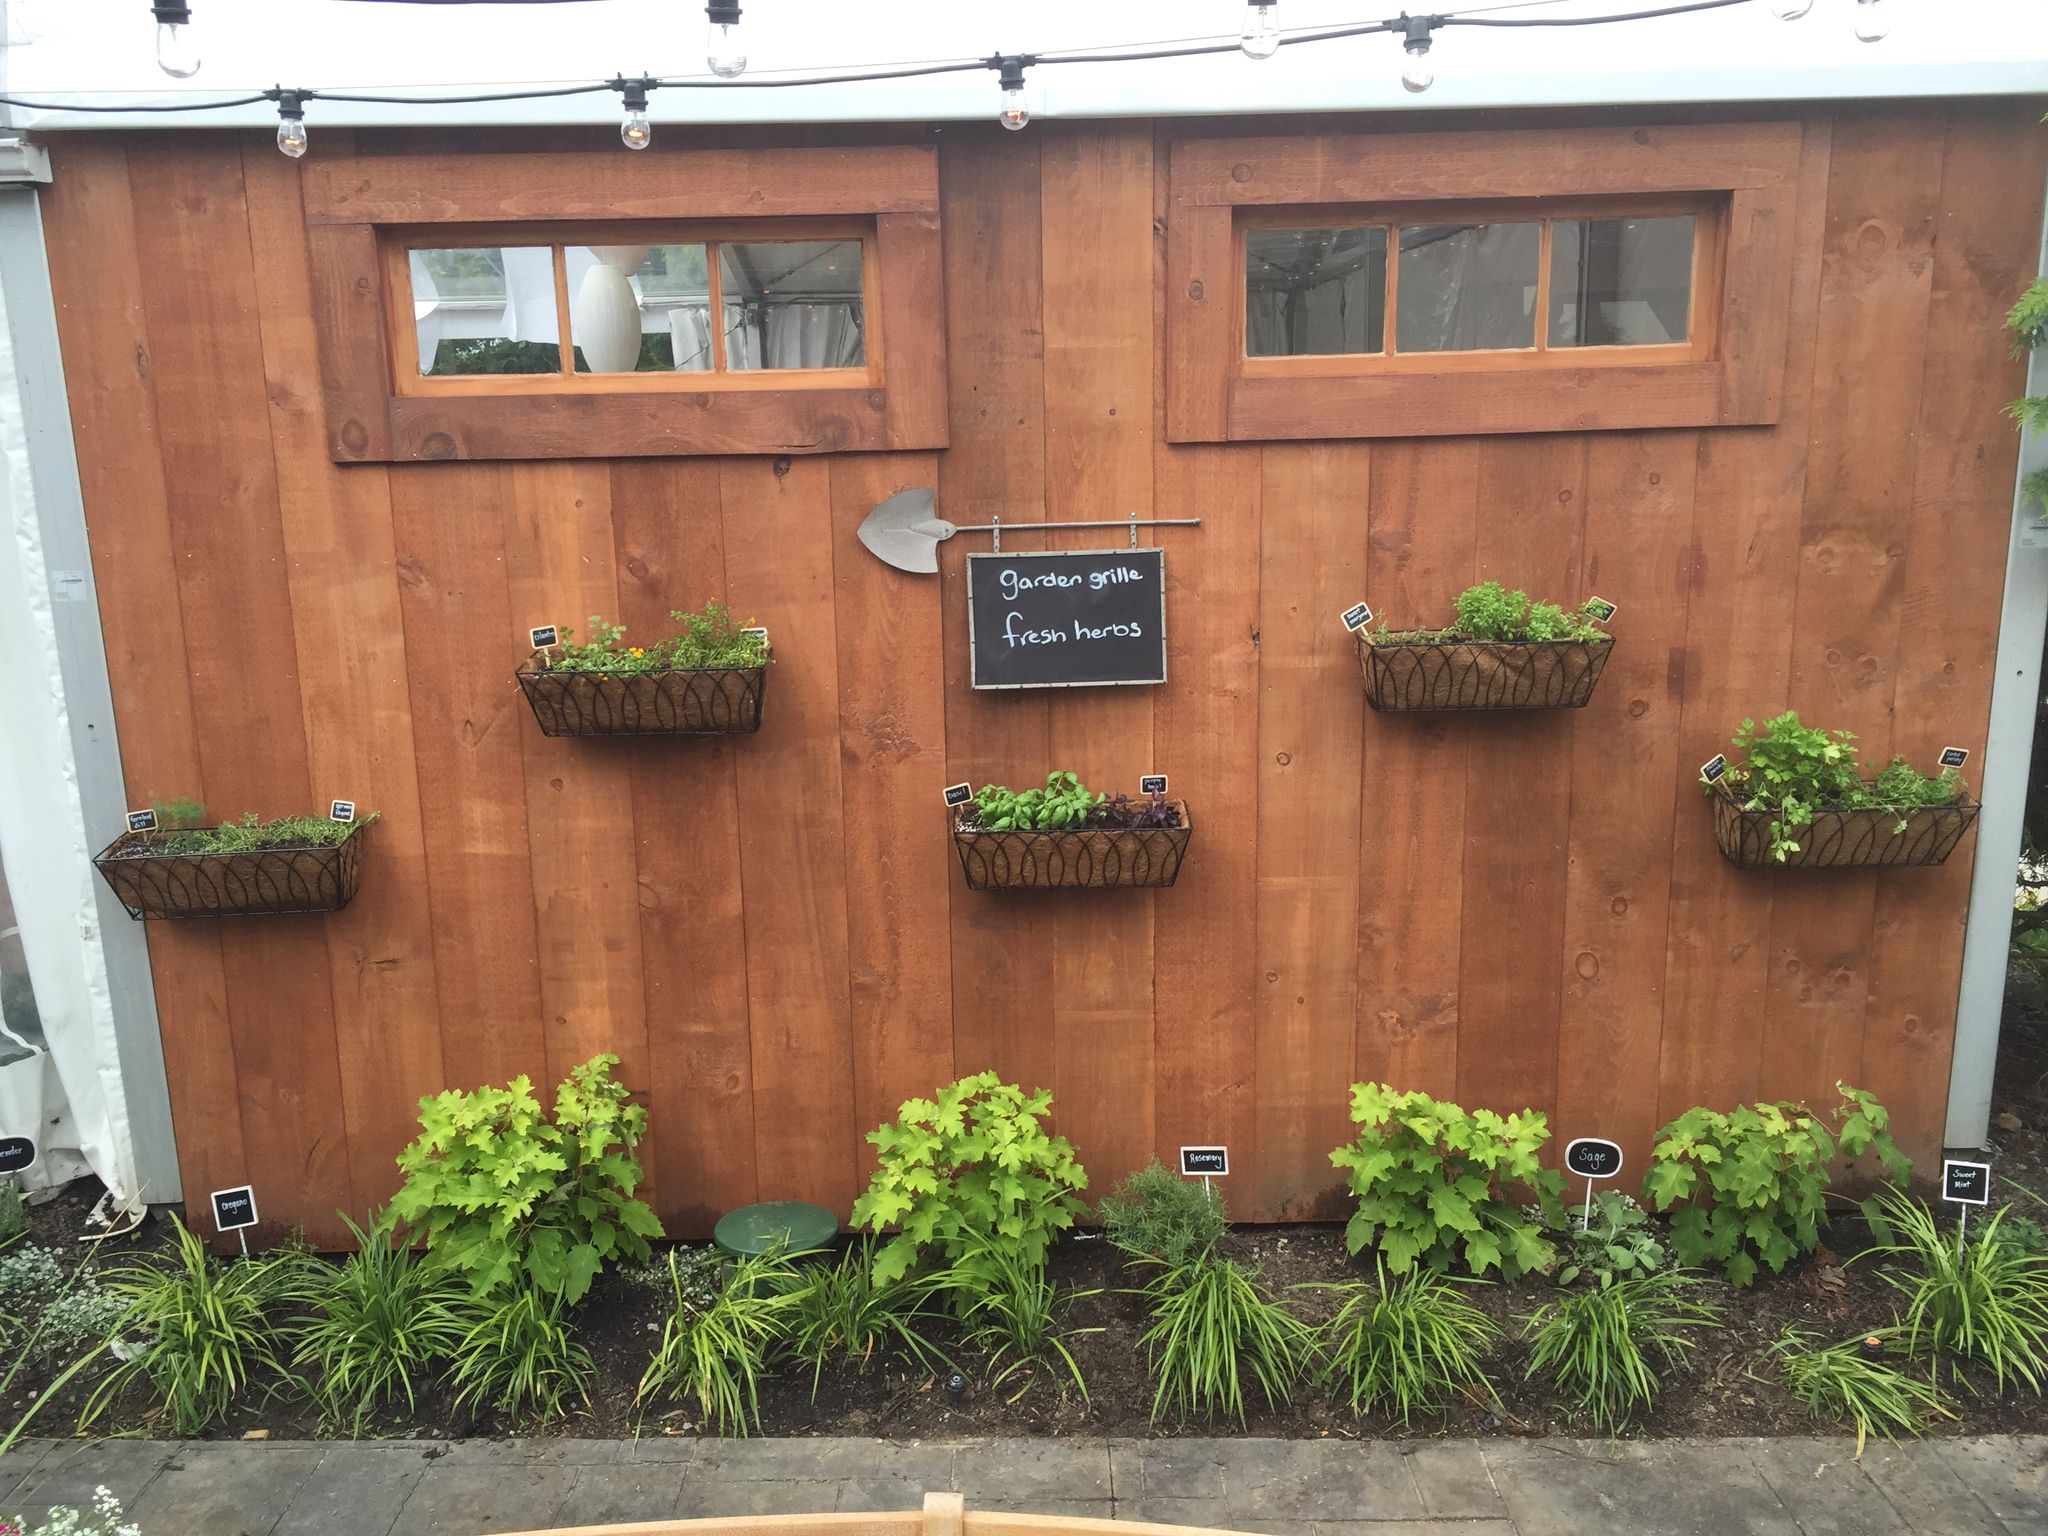 The Garden Grille restaurant has its very own herb garden at The ...